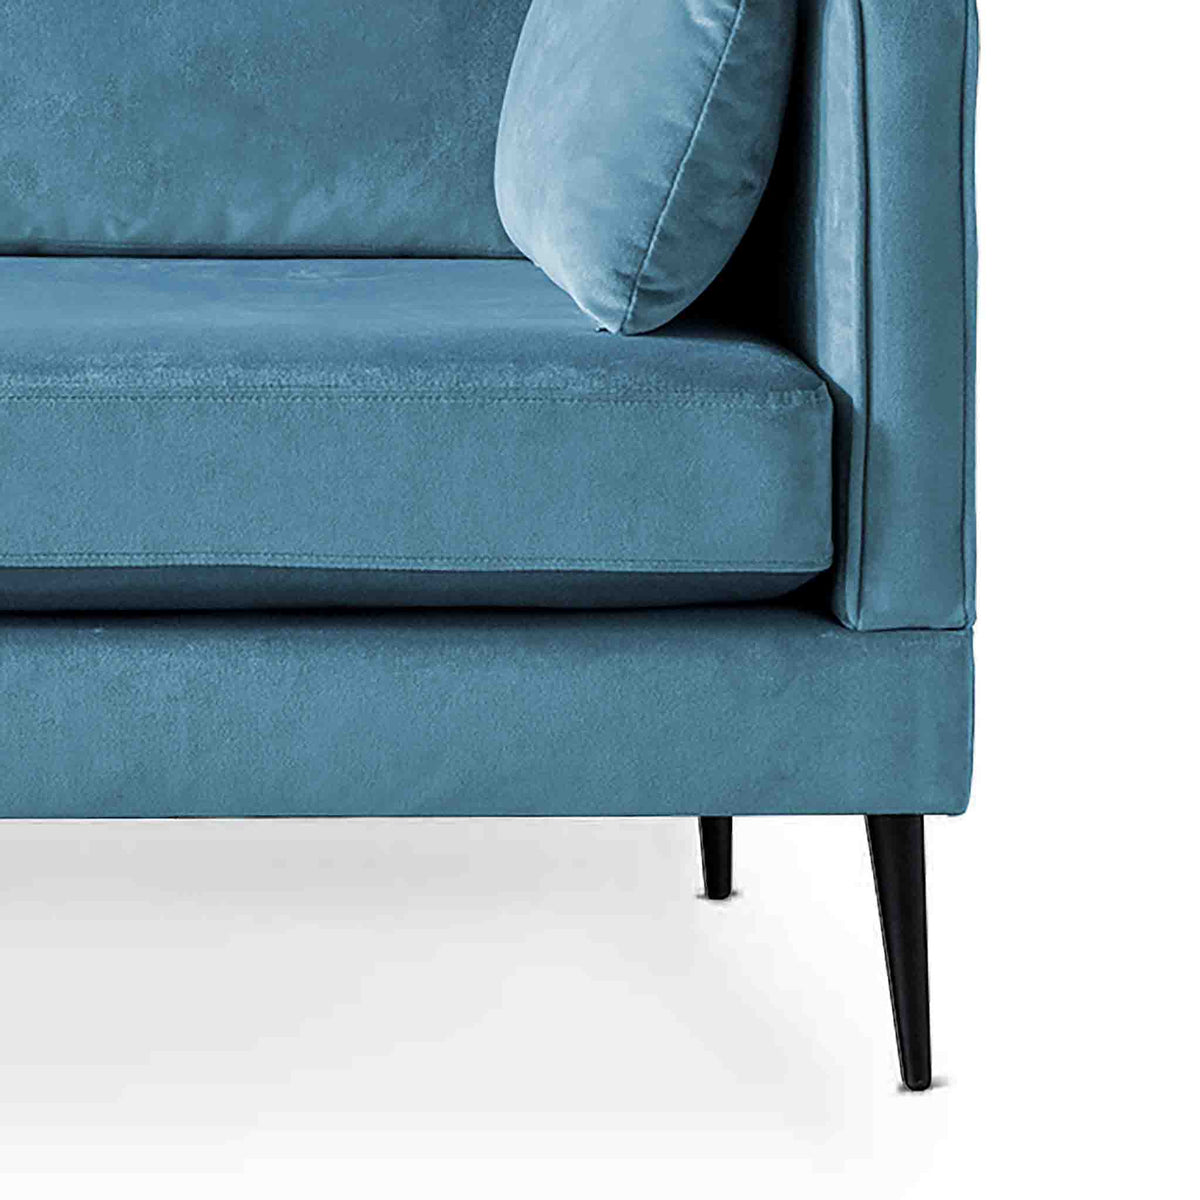 Anton Peacock 3 Seater Sofa - Close up of feet on sofa